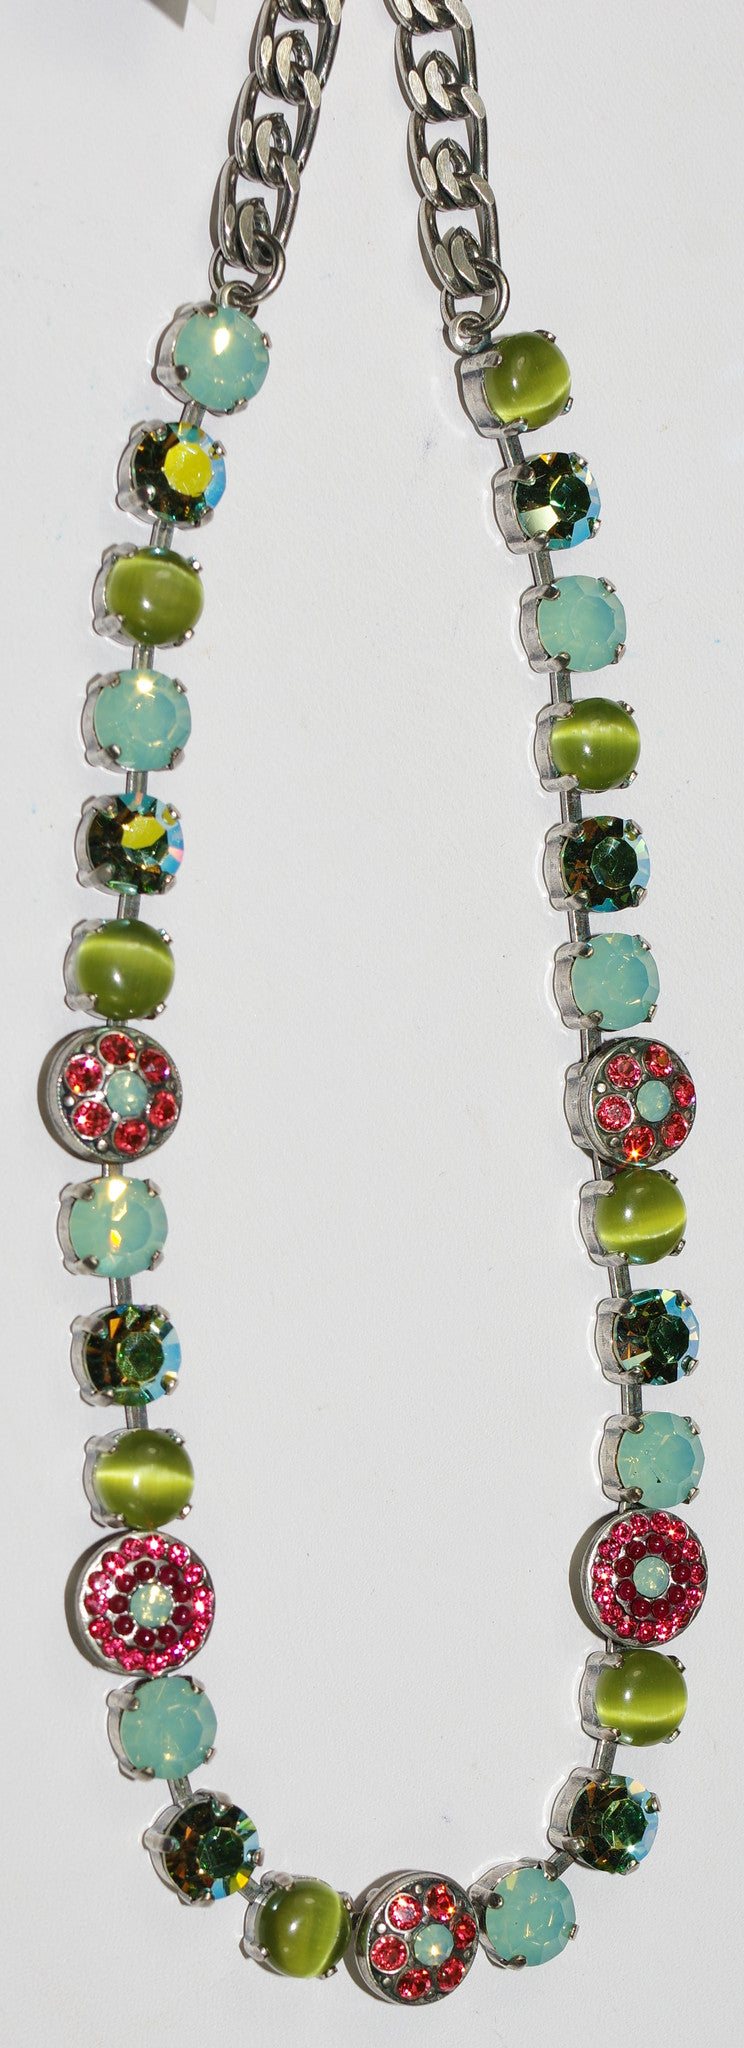 "MARIANA NECKLACE MYRRH: pacific opal, orange, green stones in silver setting, 17"" adjustable chain"